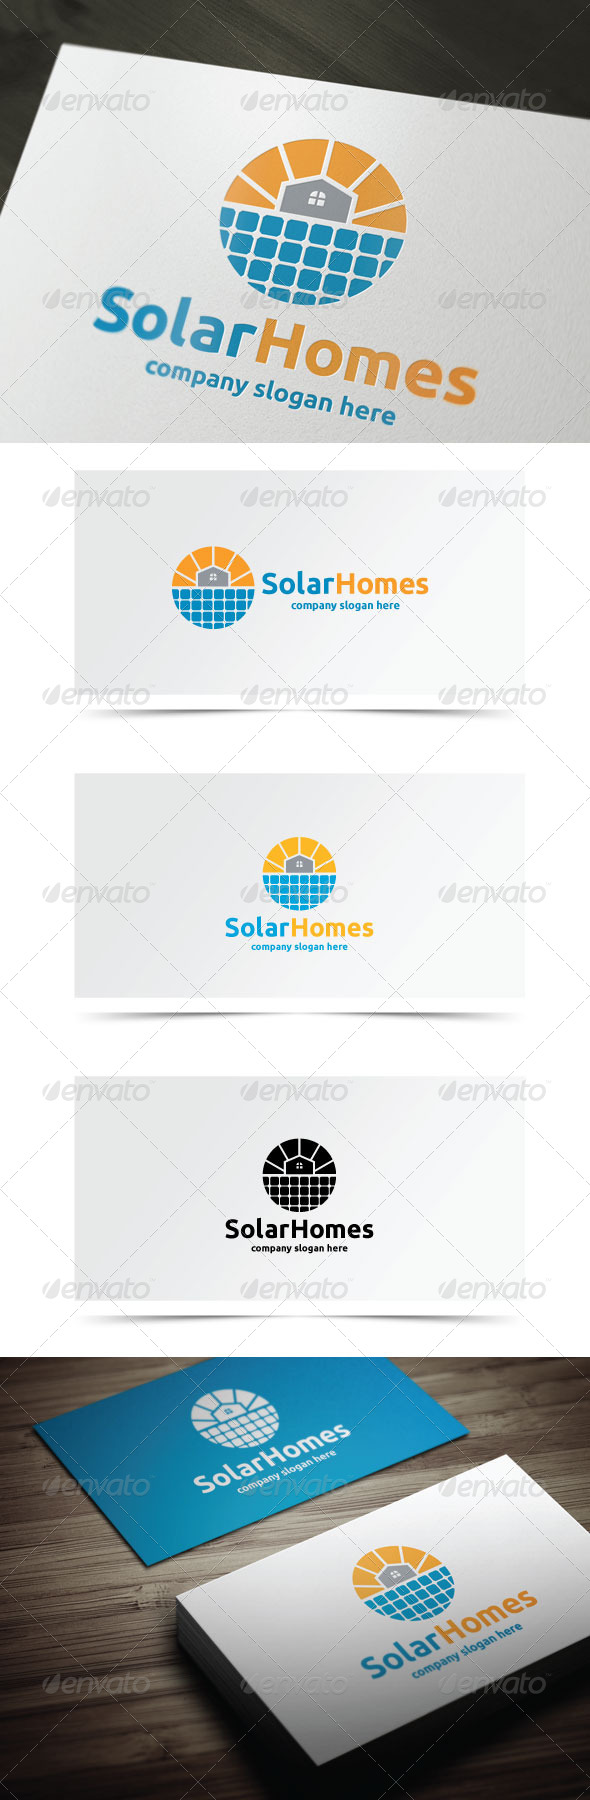 GraphicRiver Solar Homes 8148177